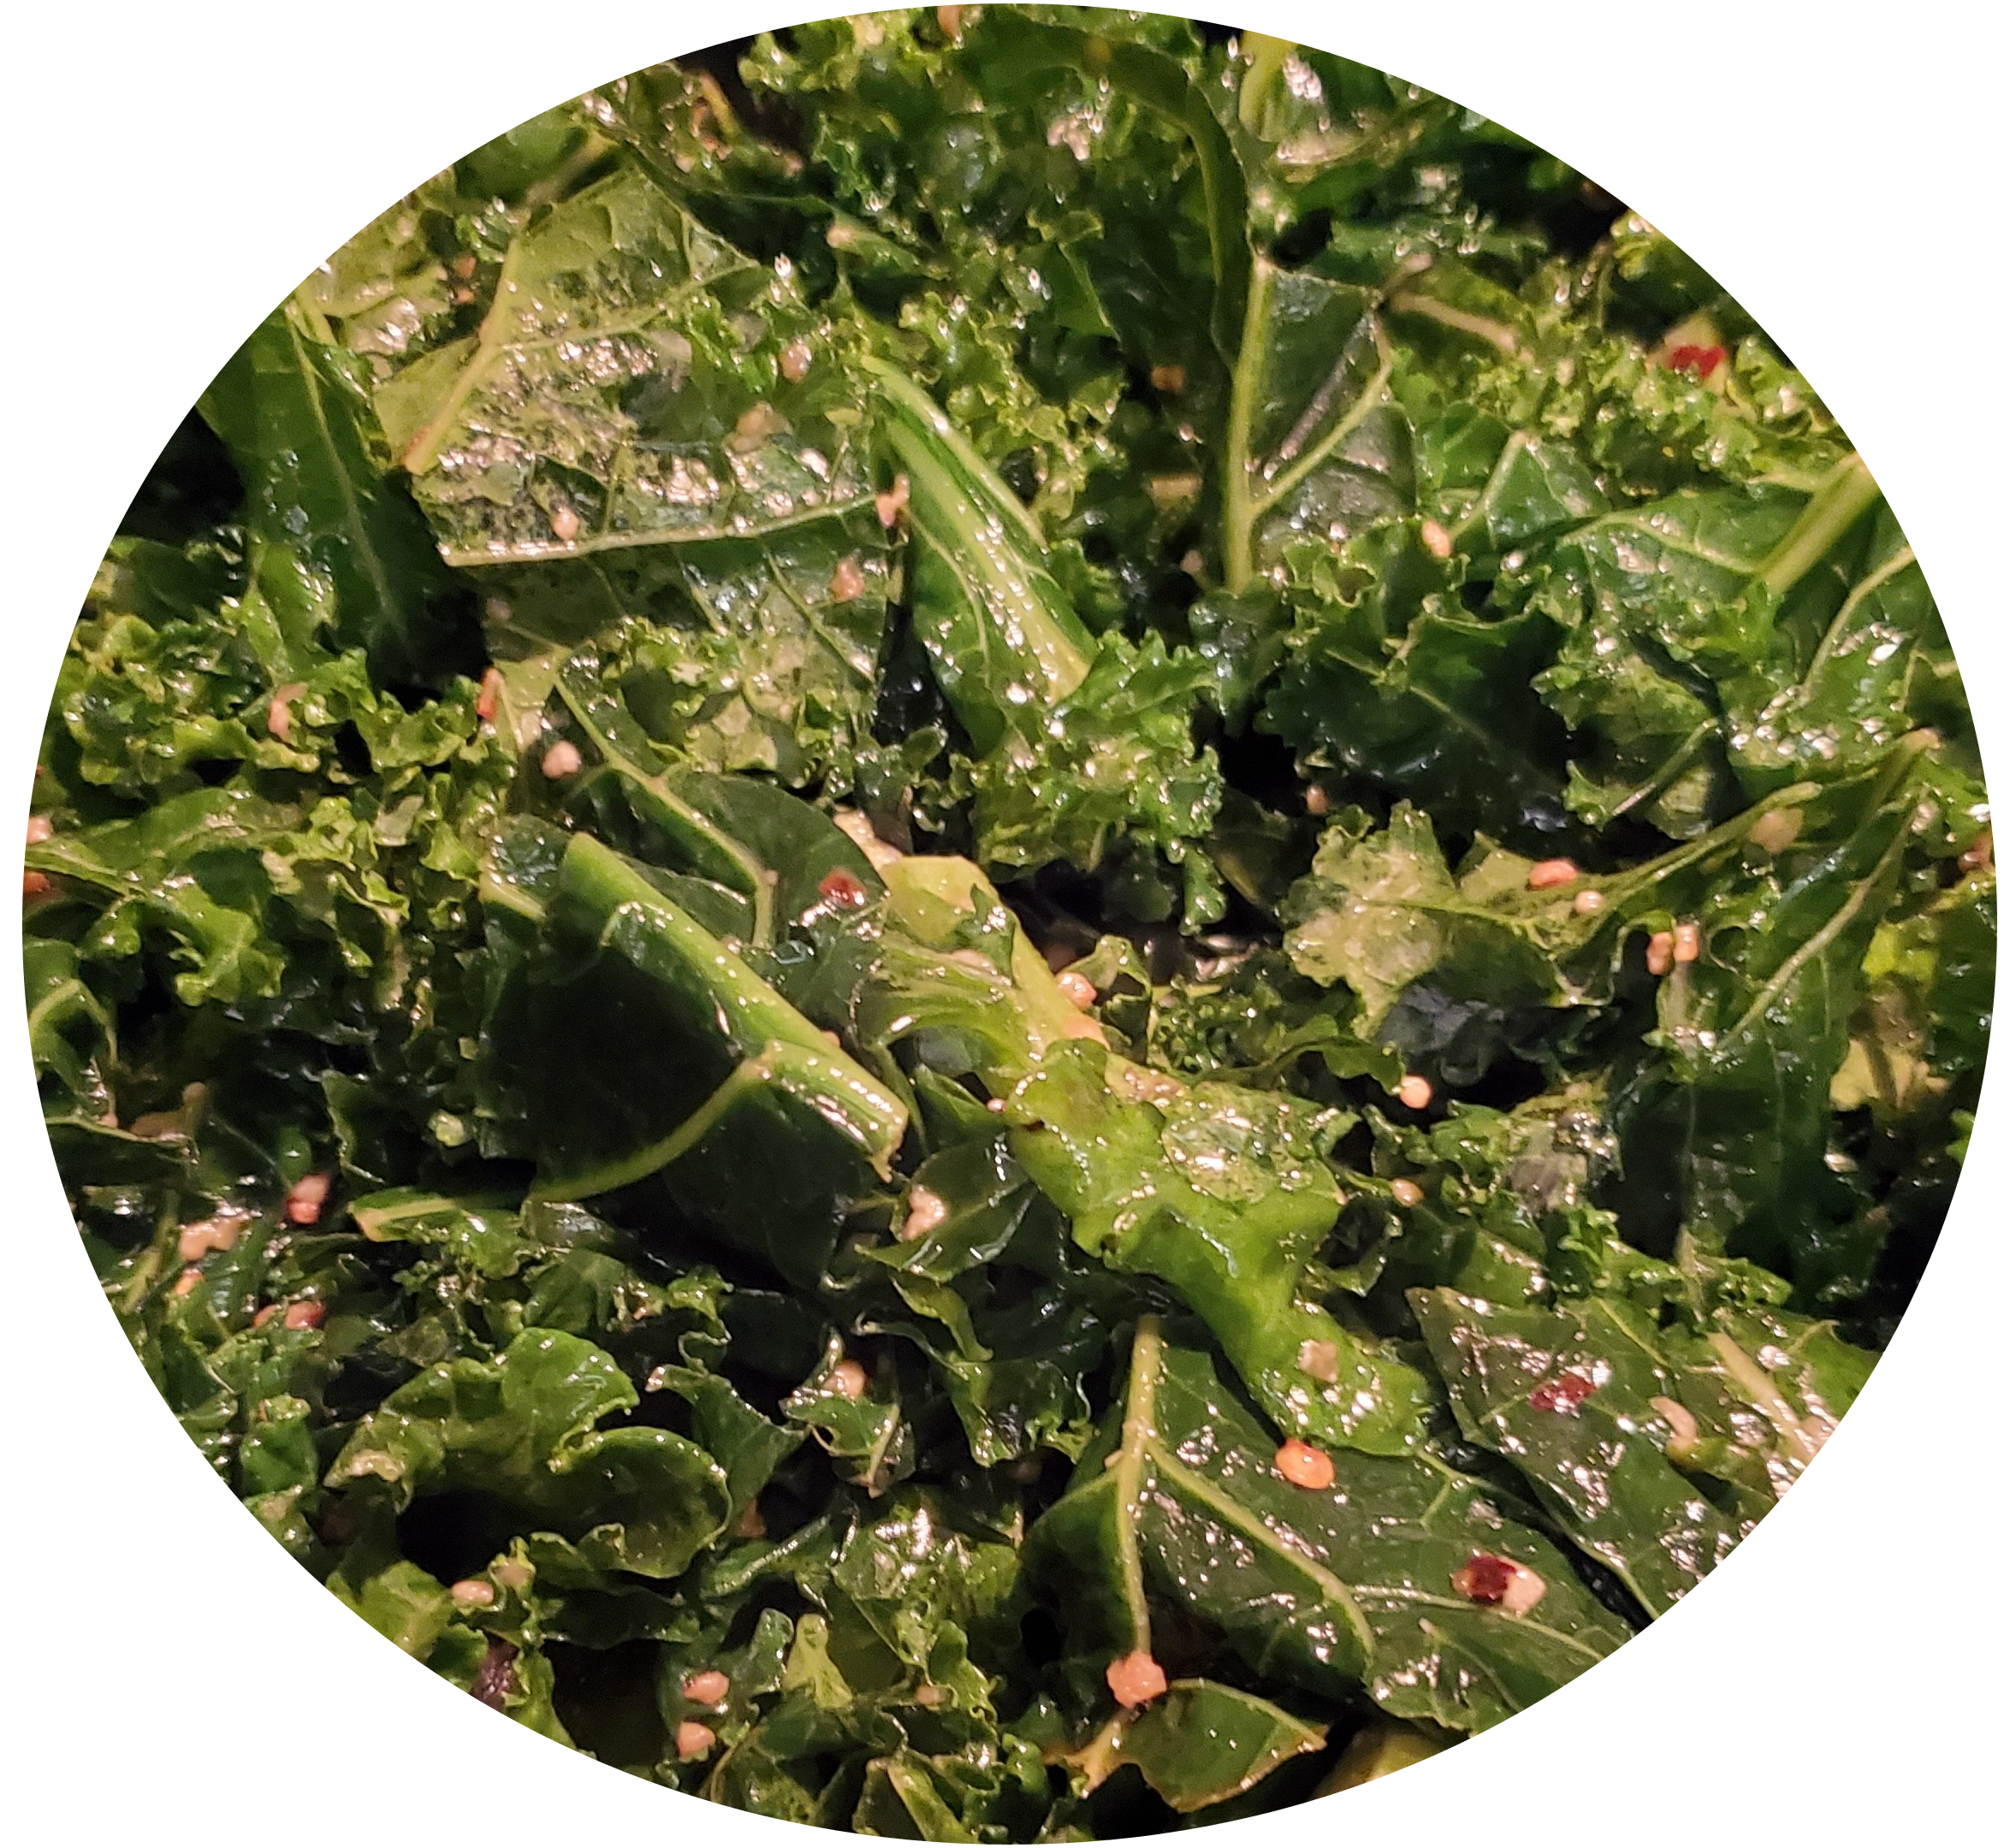 Sauteed-Kale-with-Lemon-Garlic-Recipe